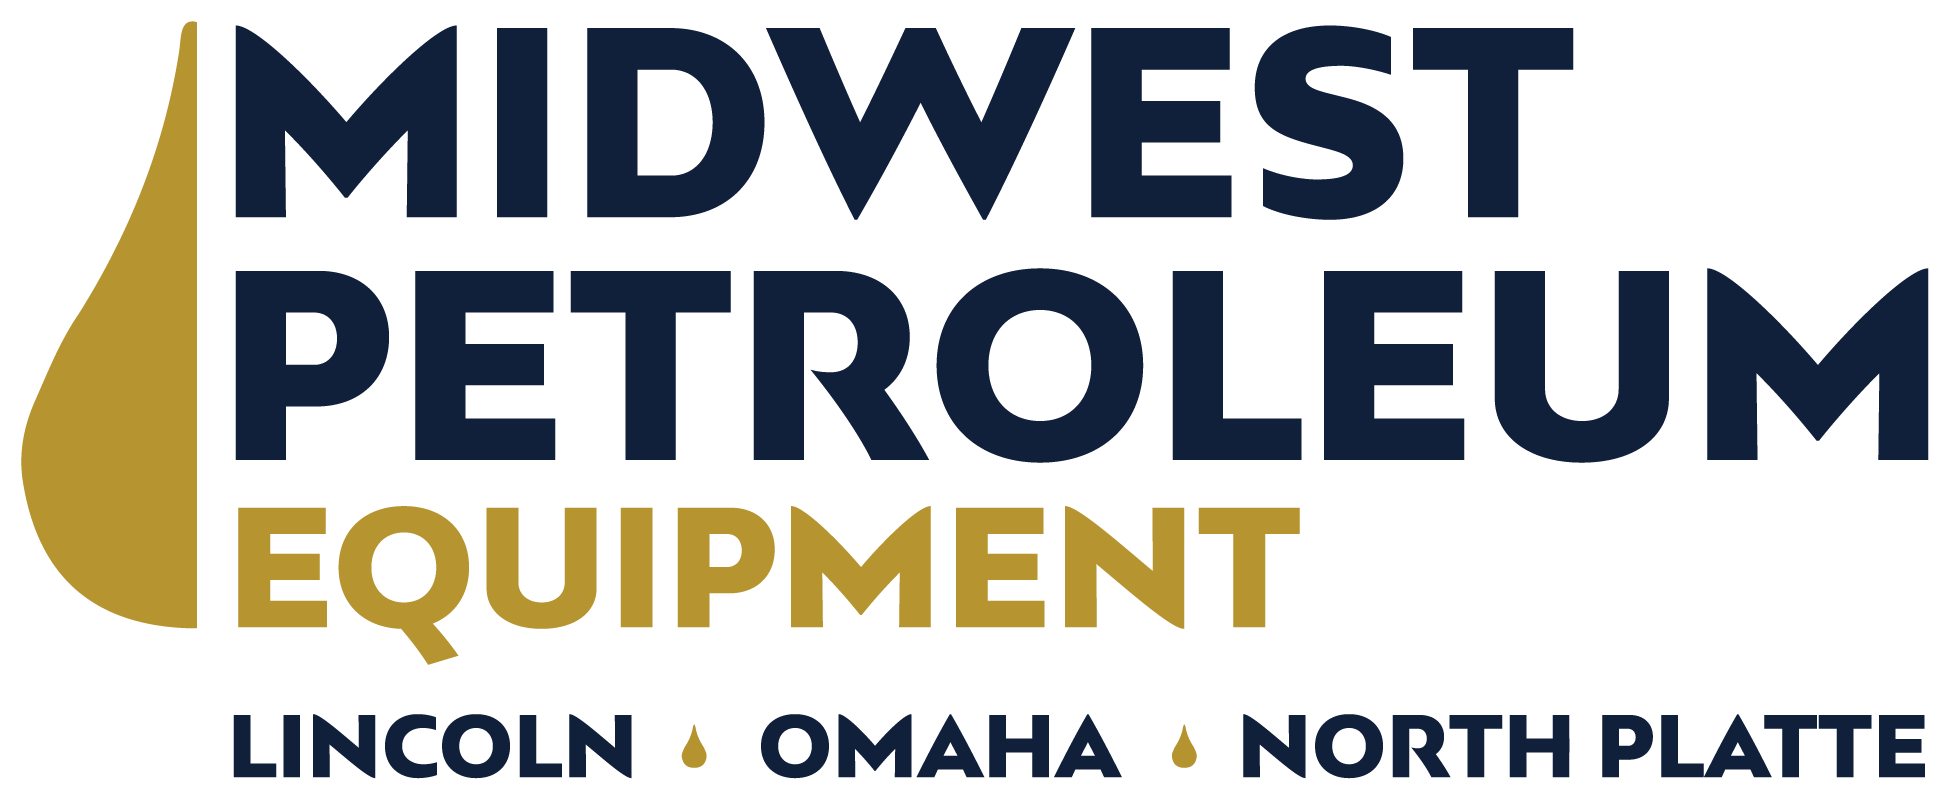 Midwest Petroleum Equipment